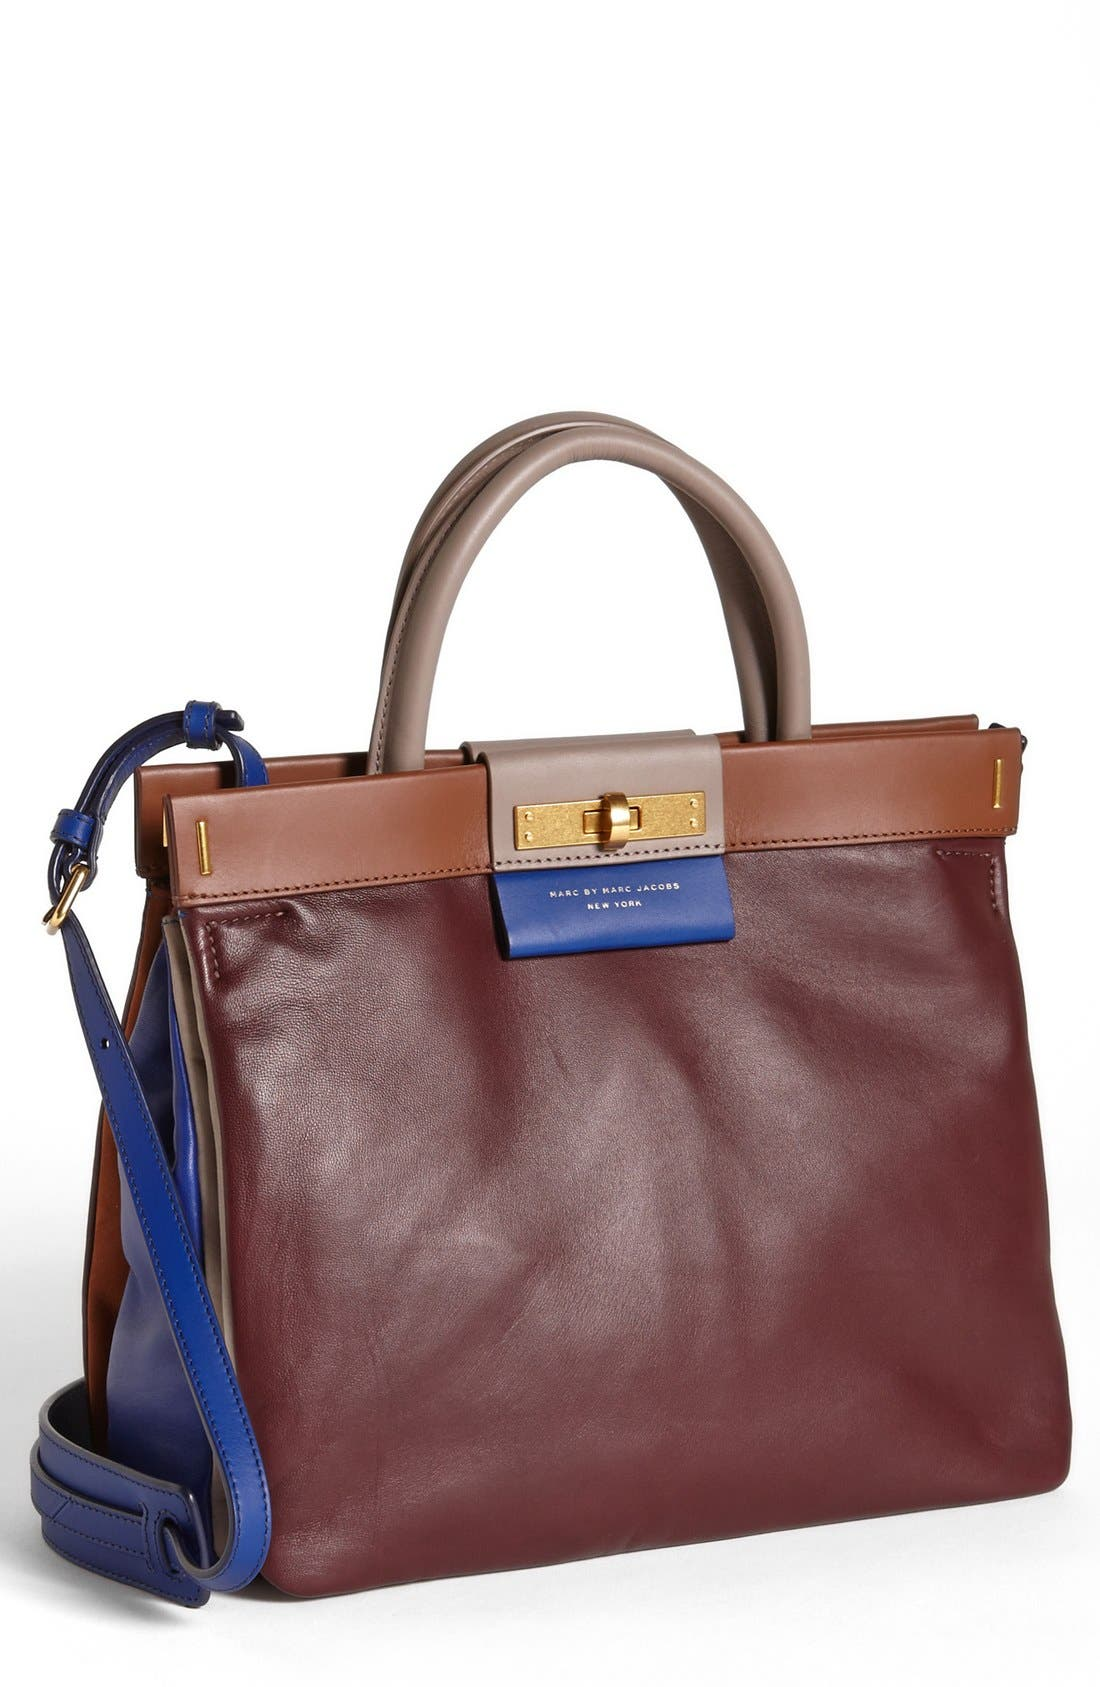 Main Image - MARC BY MARC JACOBS 'East End - Madame Hilli' Colorblocked Satchel